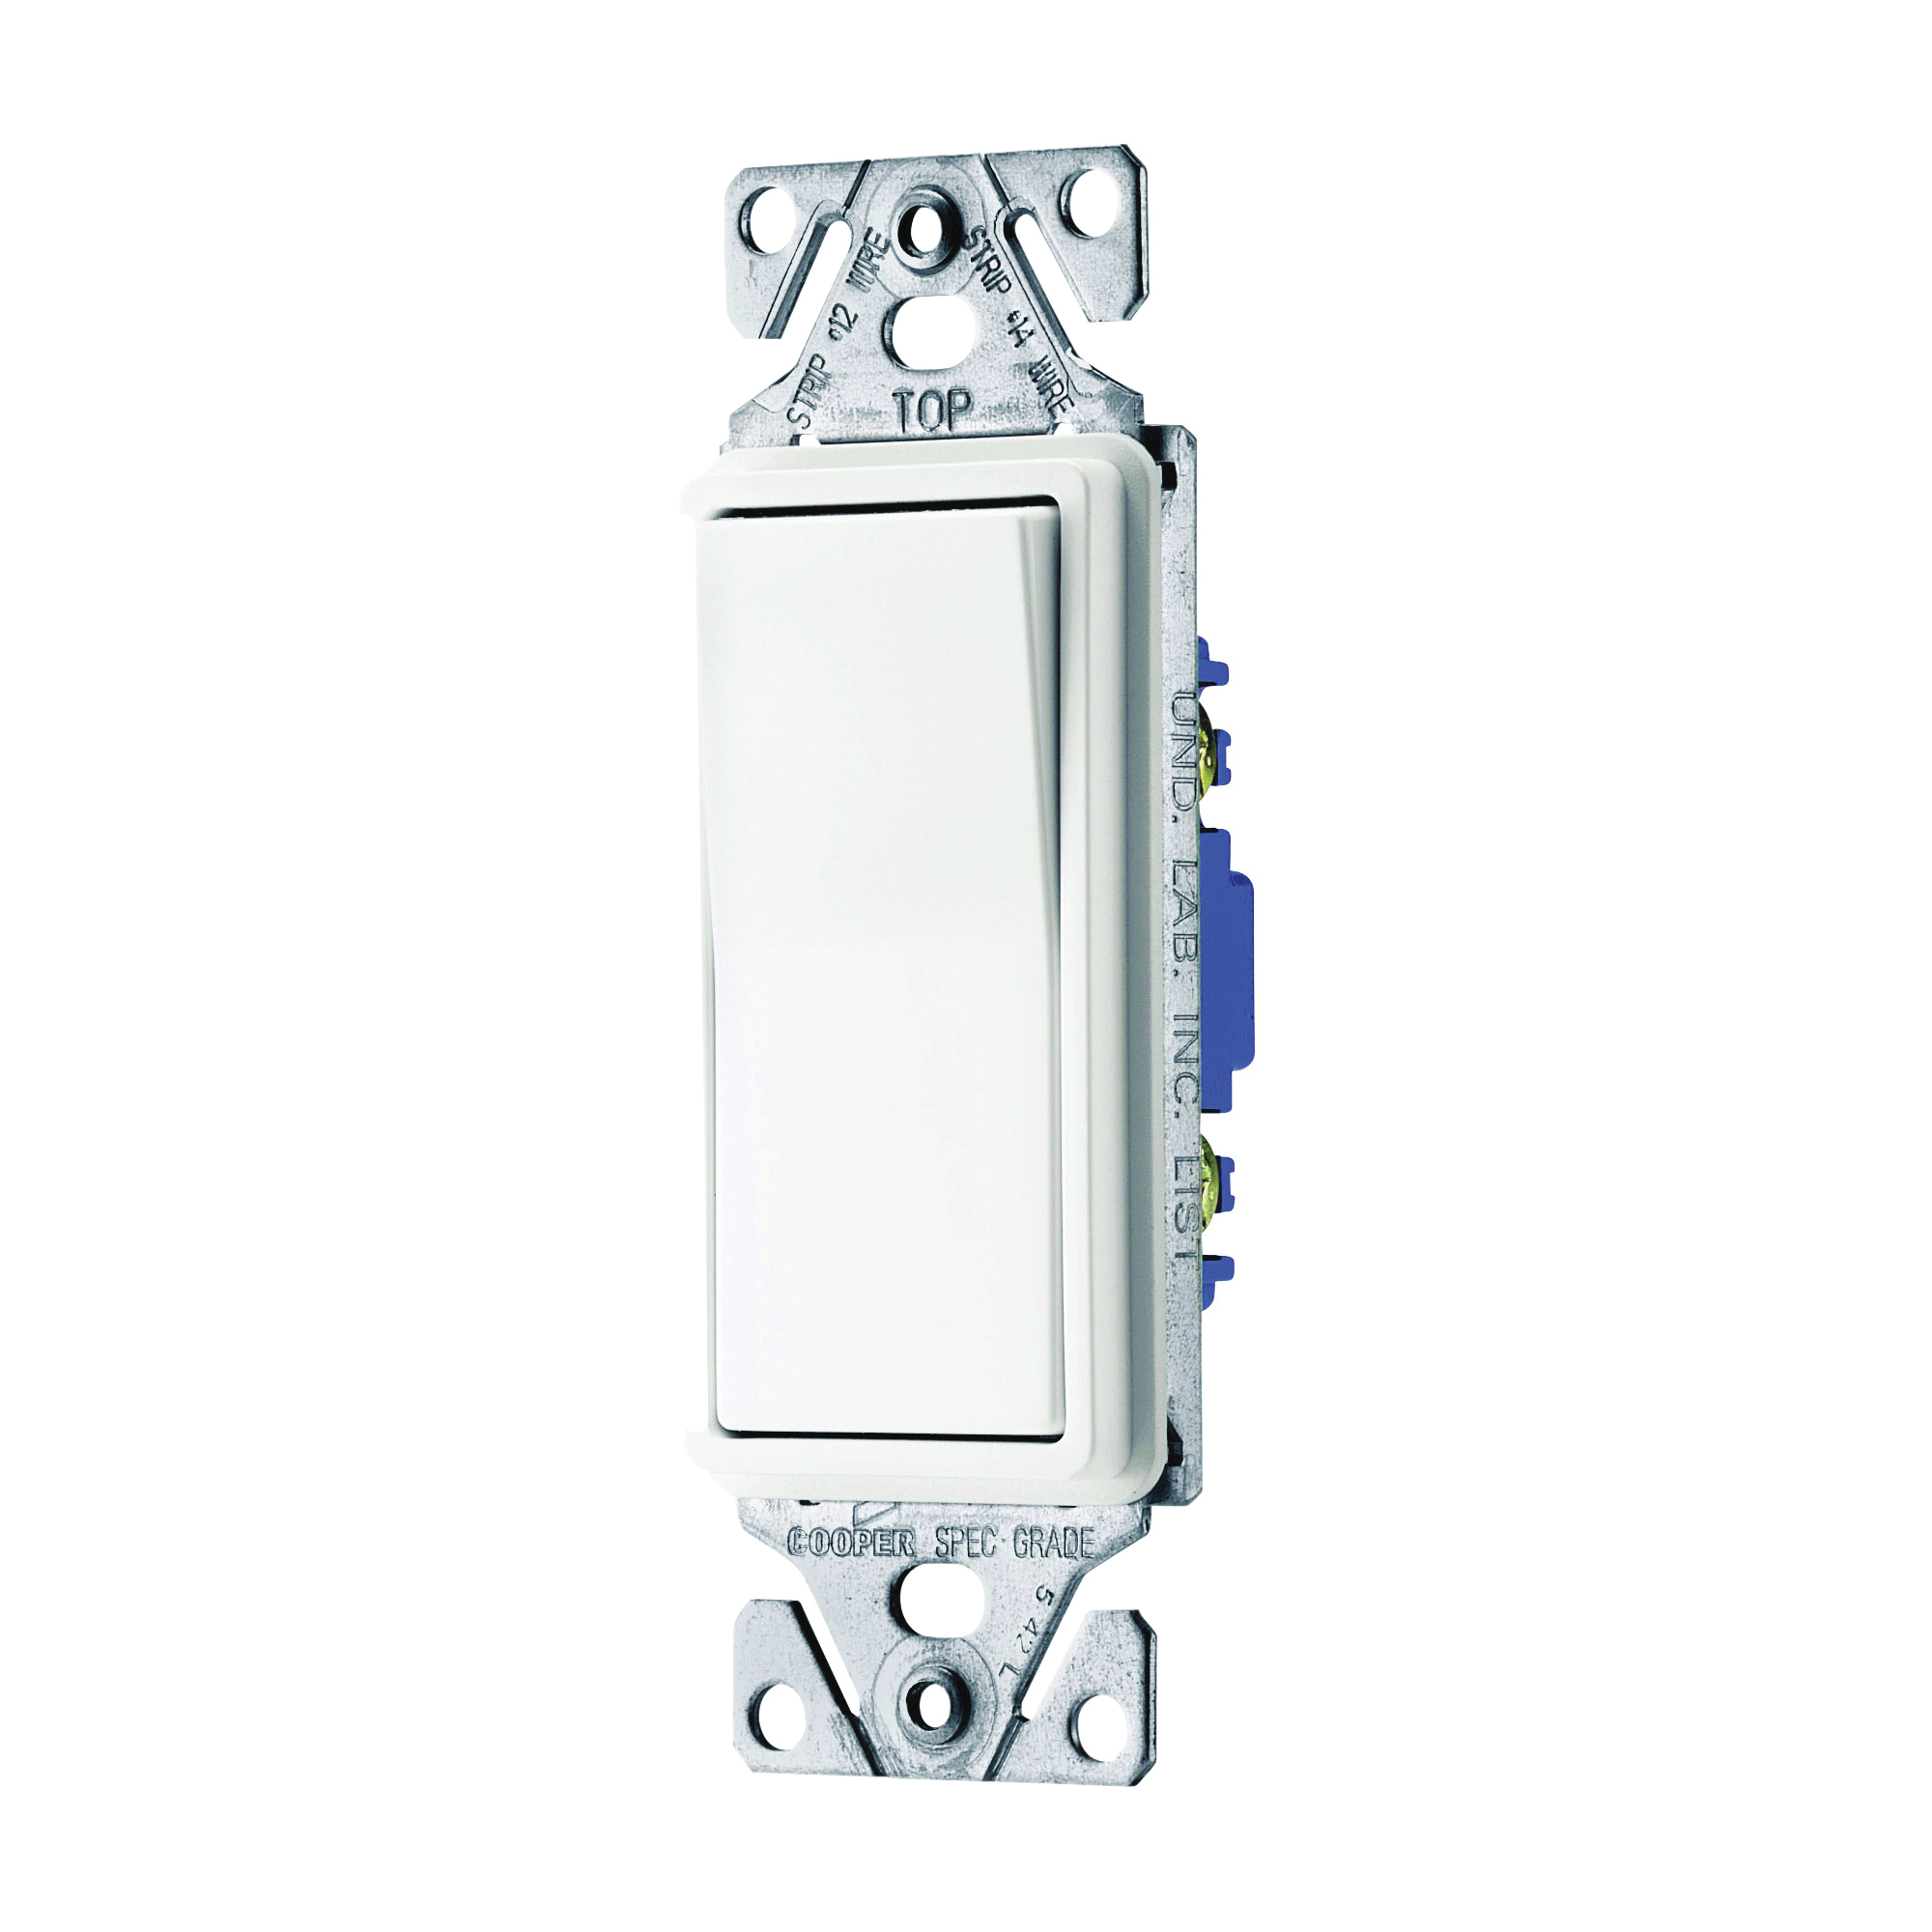 Picture of Eaton Wiring Devices 7500 Series C7503W-SP-L Rocker Switch, 15 A, 120/277 V, 3-Way, Lead Wire Terminal, White